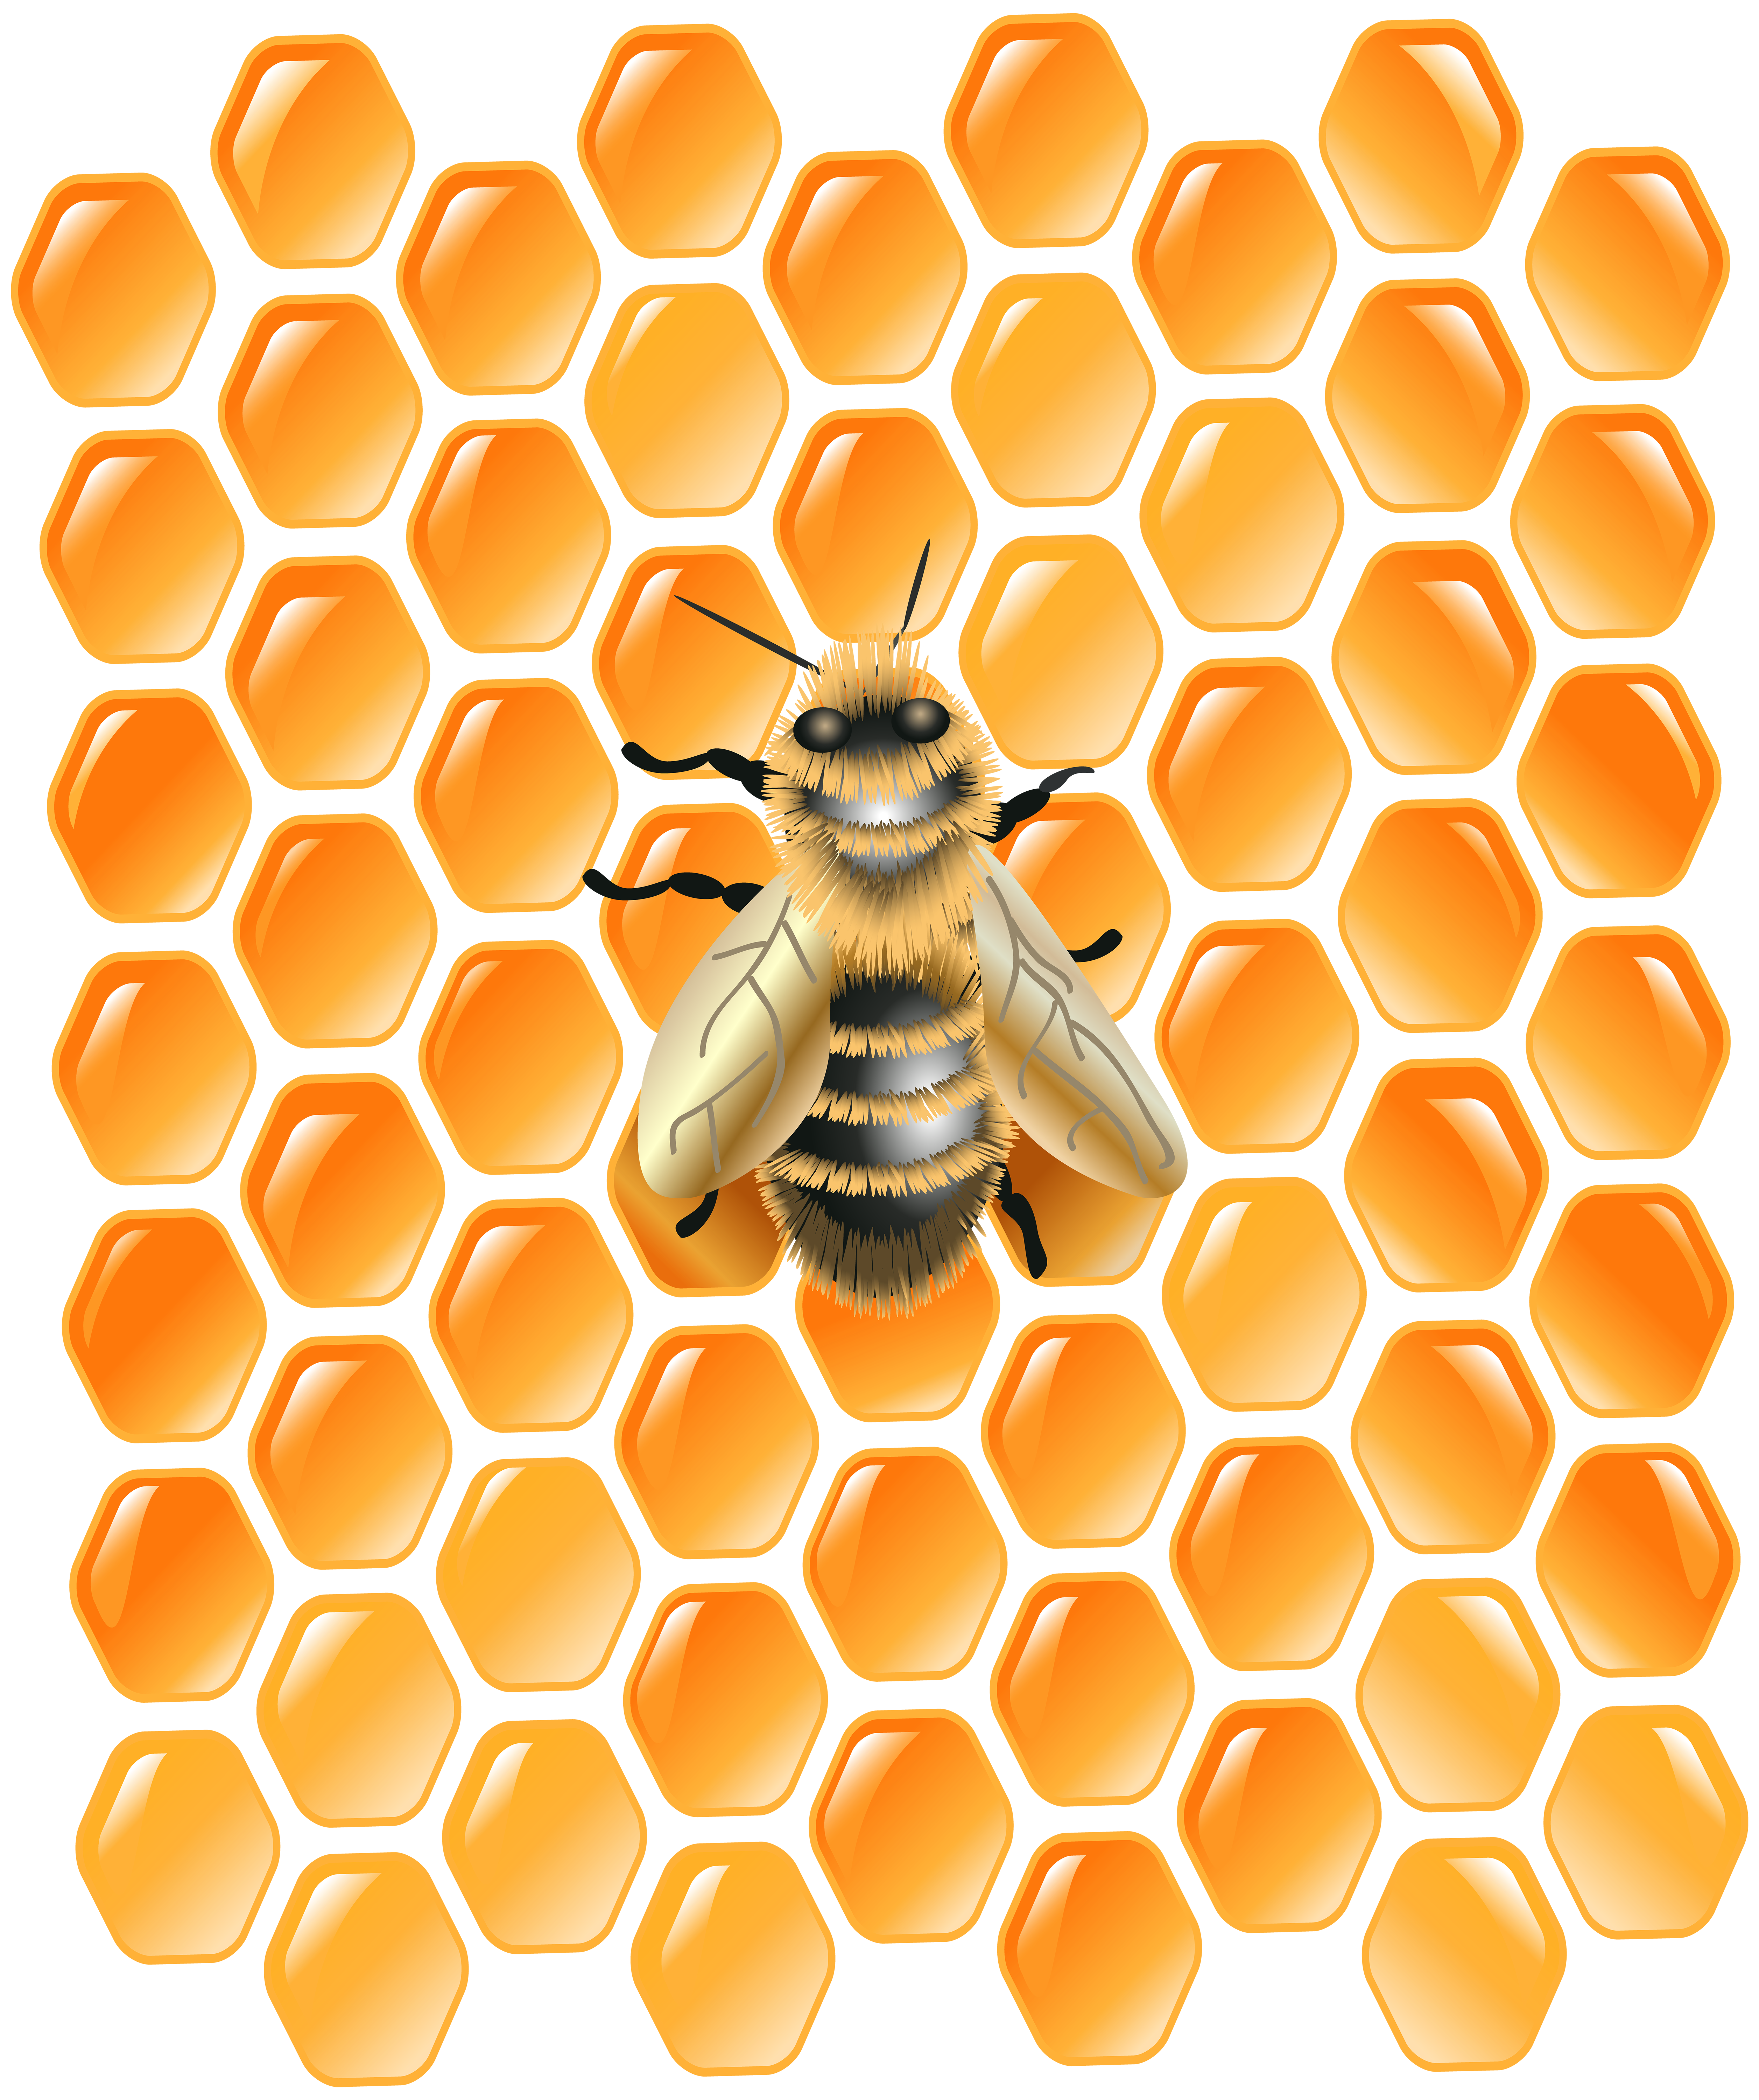 Honeycomb bee png. With clip art image